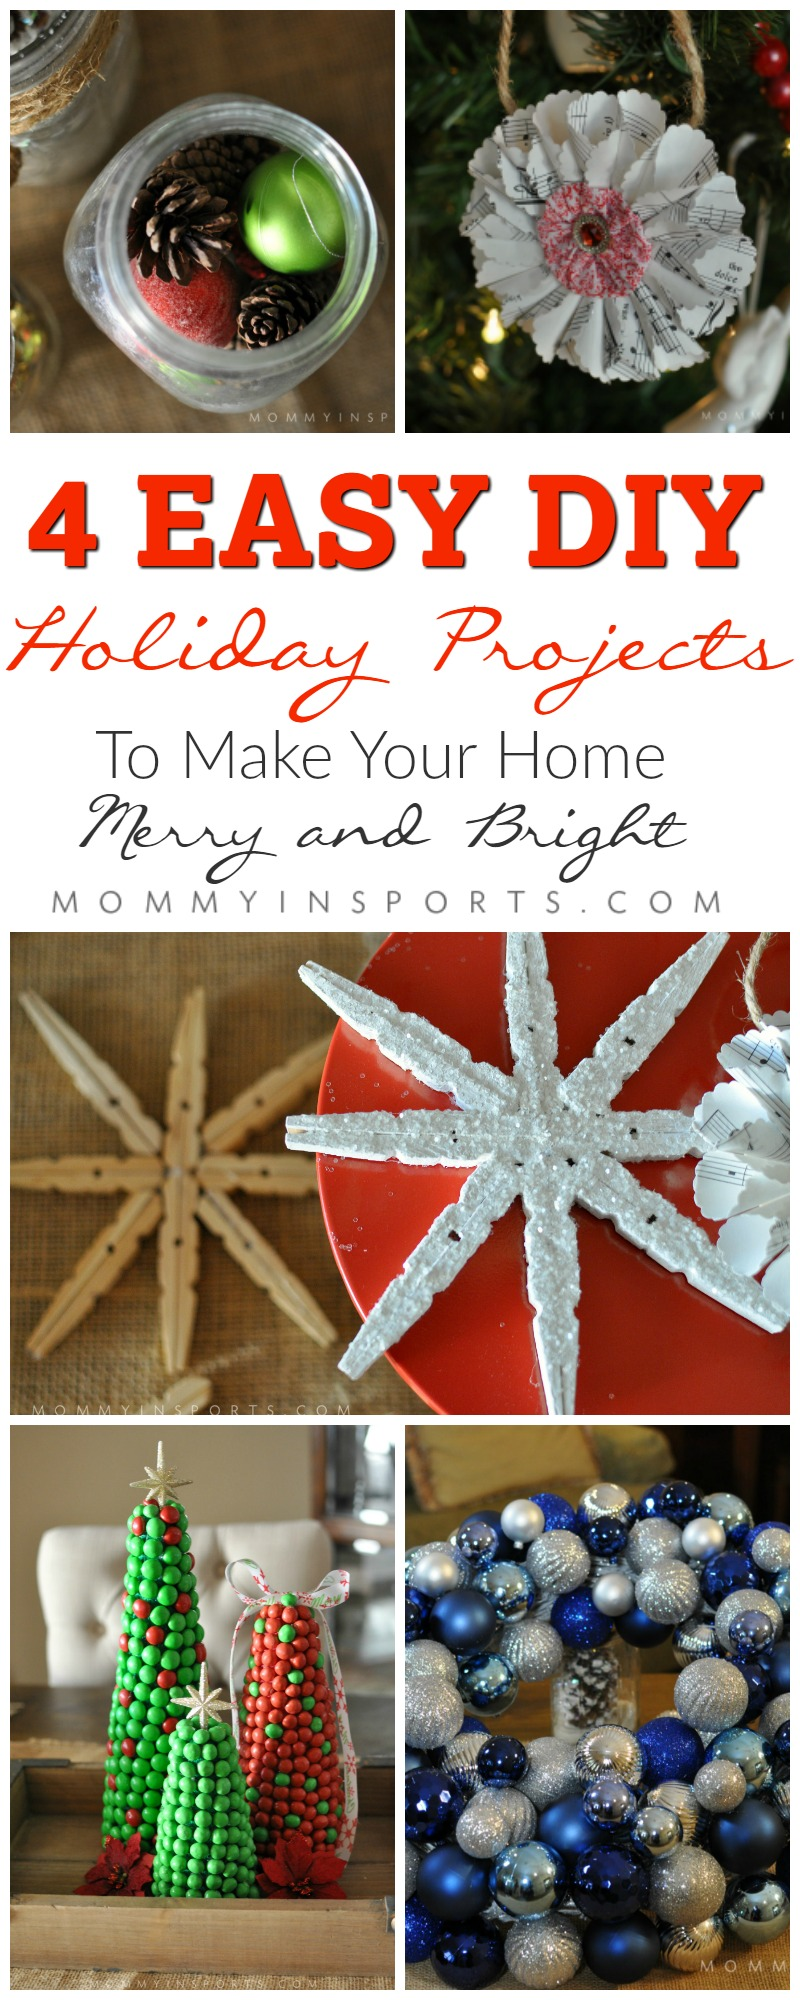 Make Your Home Merry Bright With These 4 Easy Diy Projects Kristen Hewitt,Small Apartment Bedroom Layout